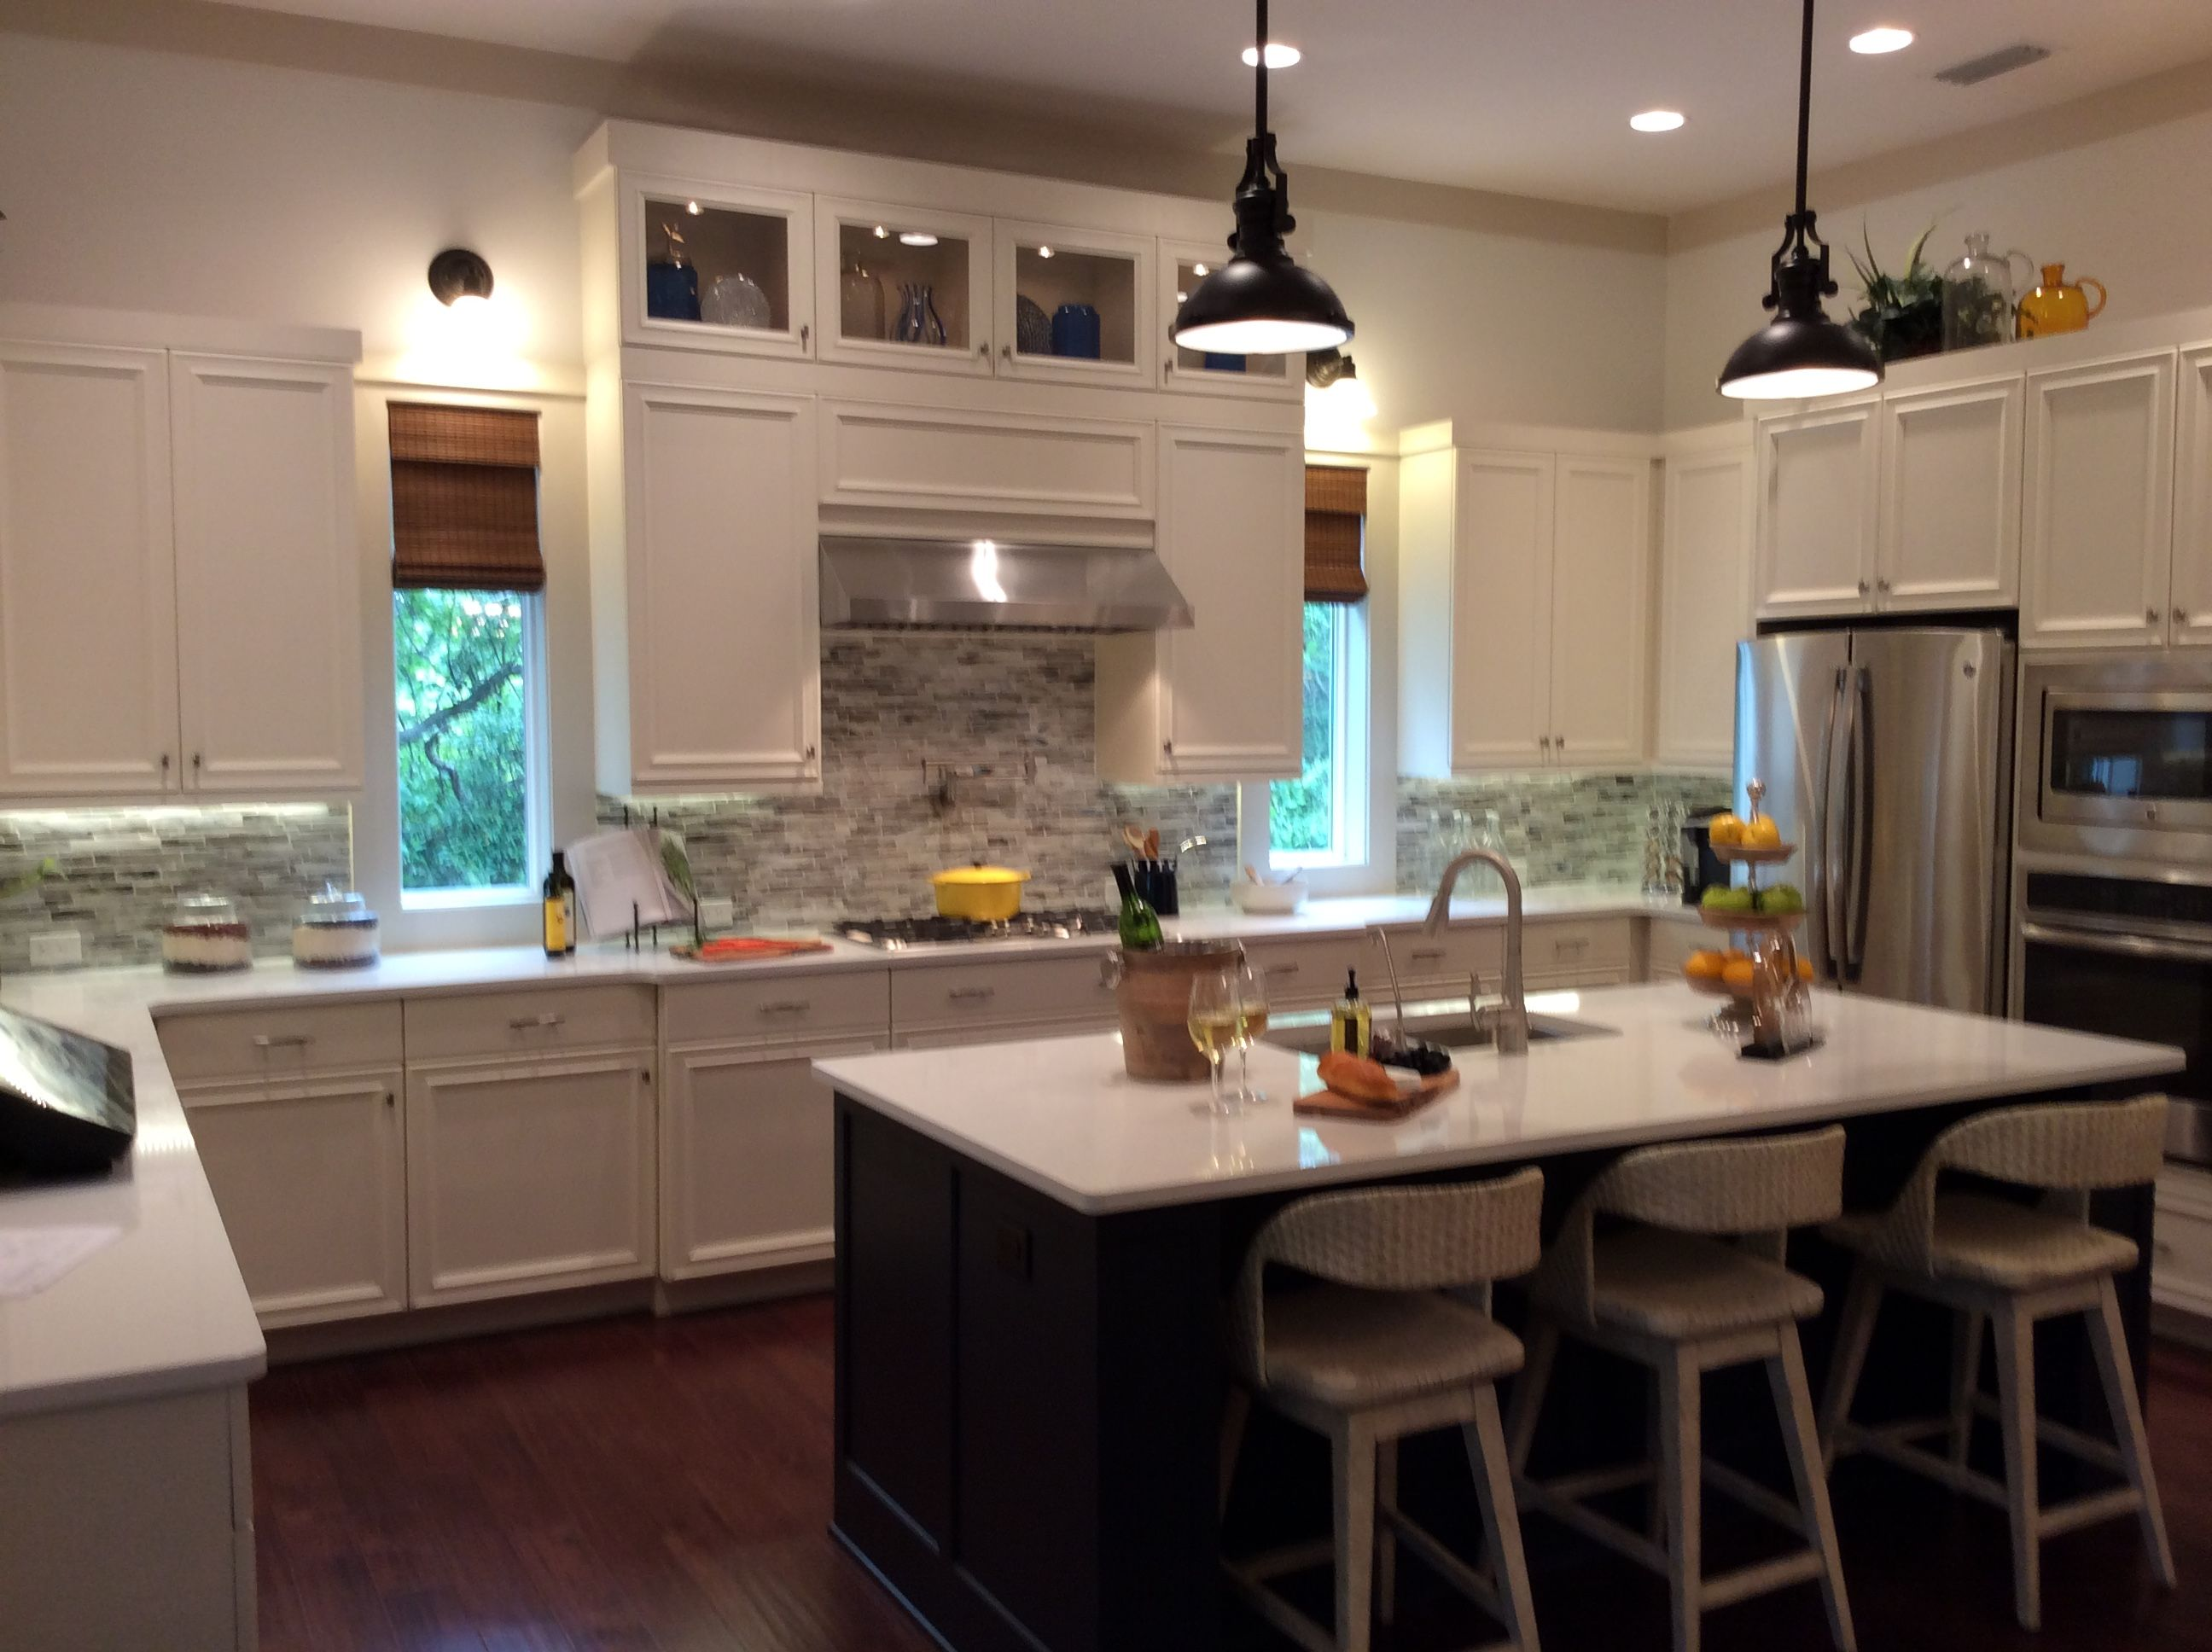 Custom Cabinets, Side Windows, Casual Flat Stock Molding And Simple Style  Make This A